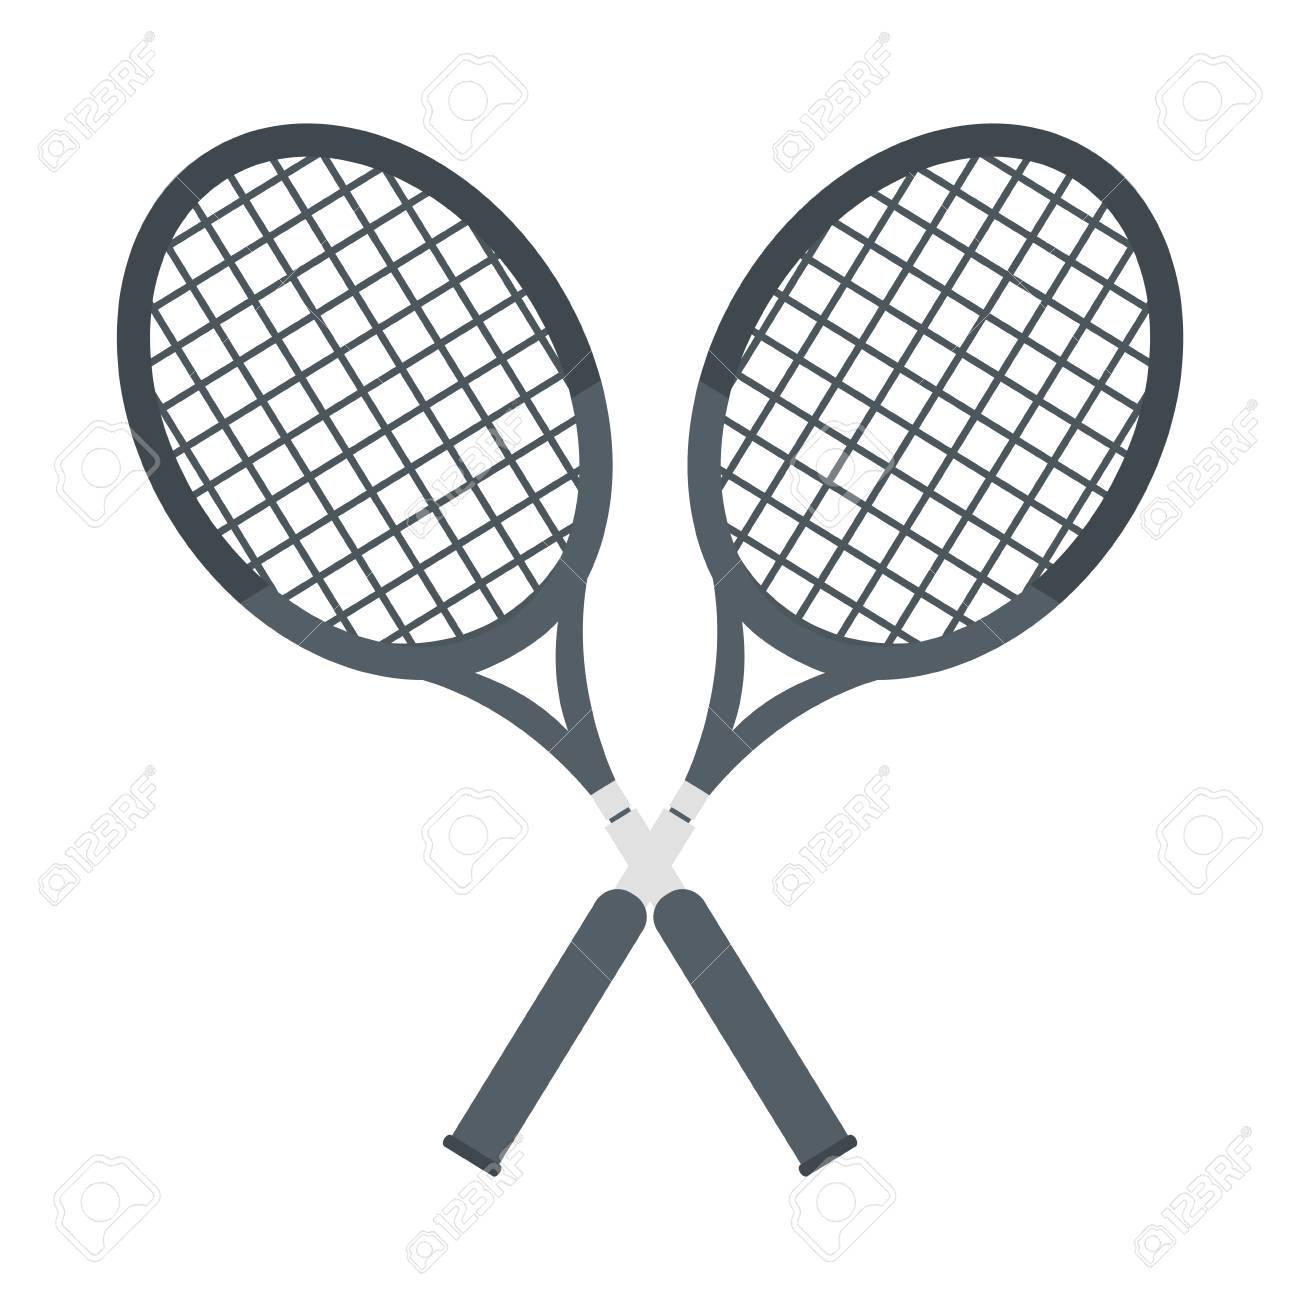 Two Racket Crossed Tennis Graphic Vector Illustration Royalty Free